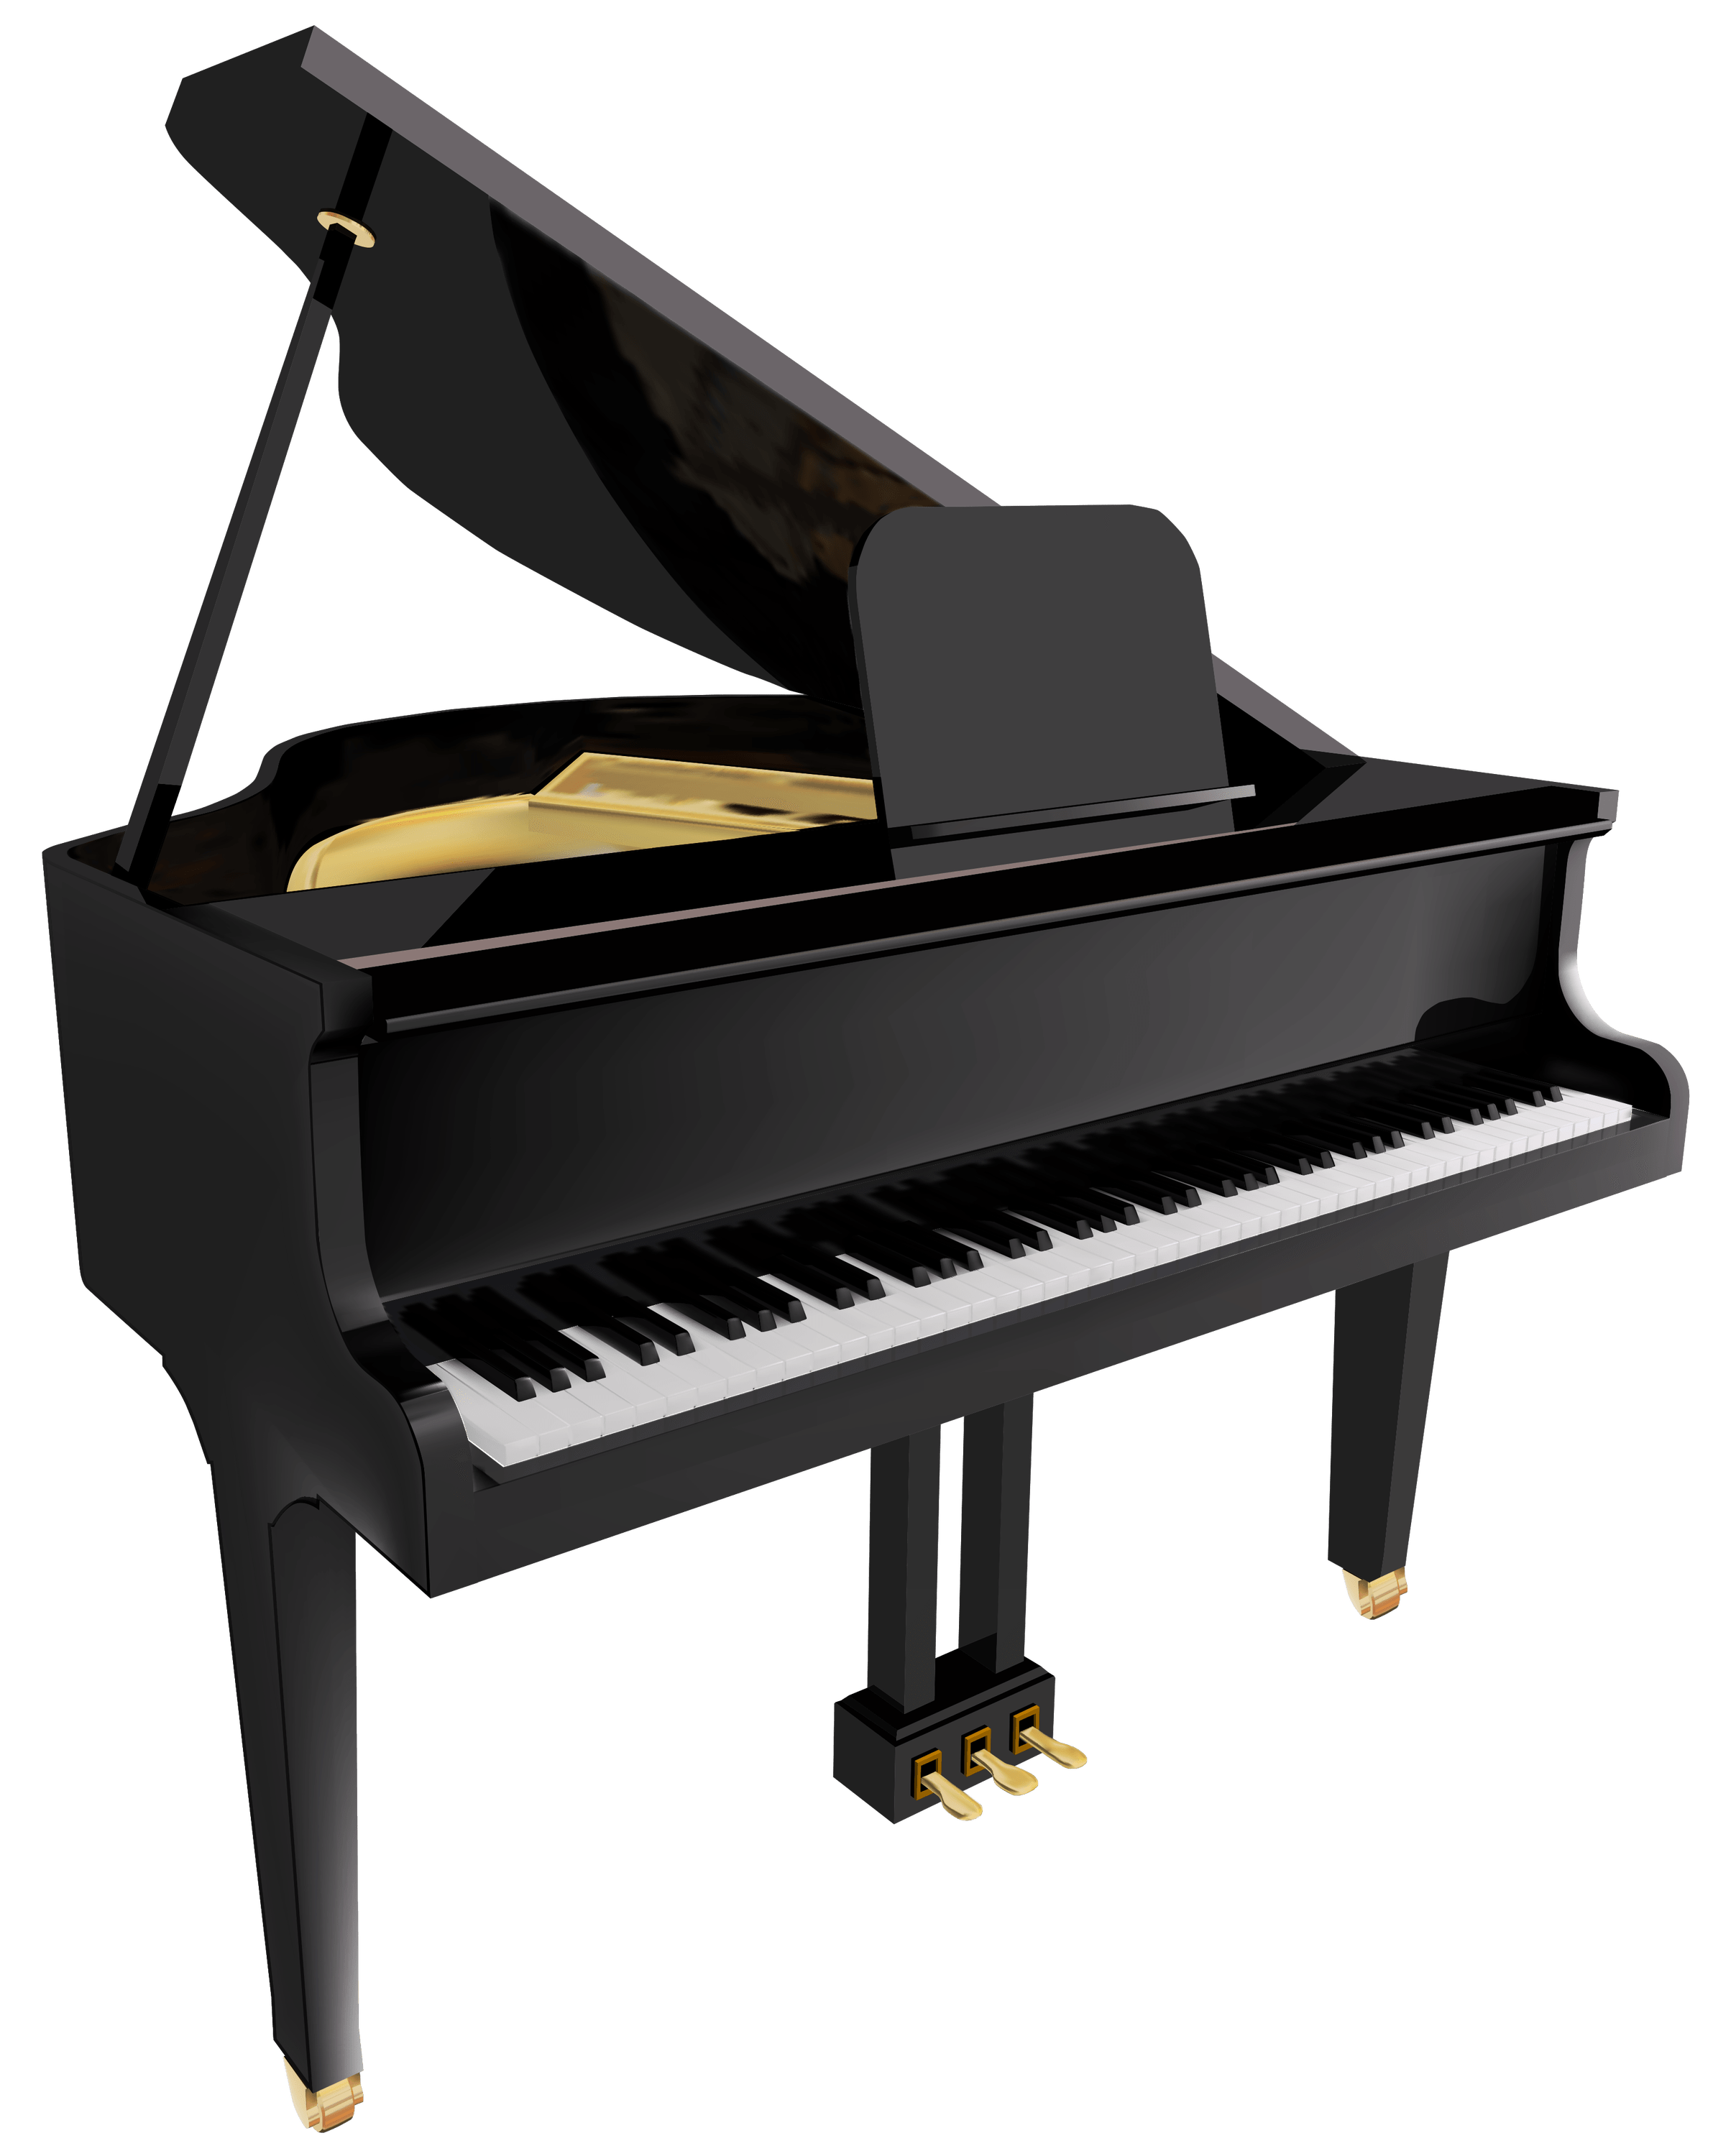 picture royalty free Transparent png stickpng objects. Piano keyboard clipart.